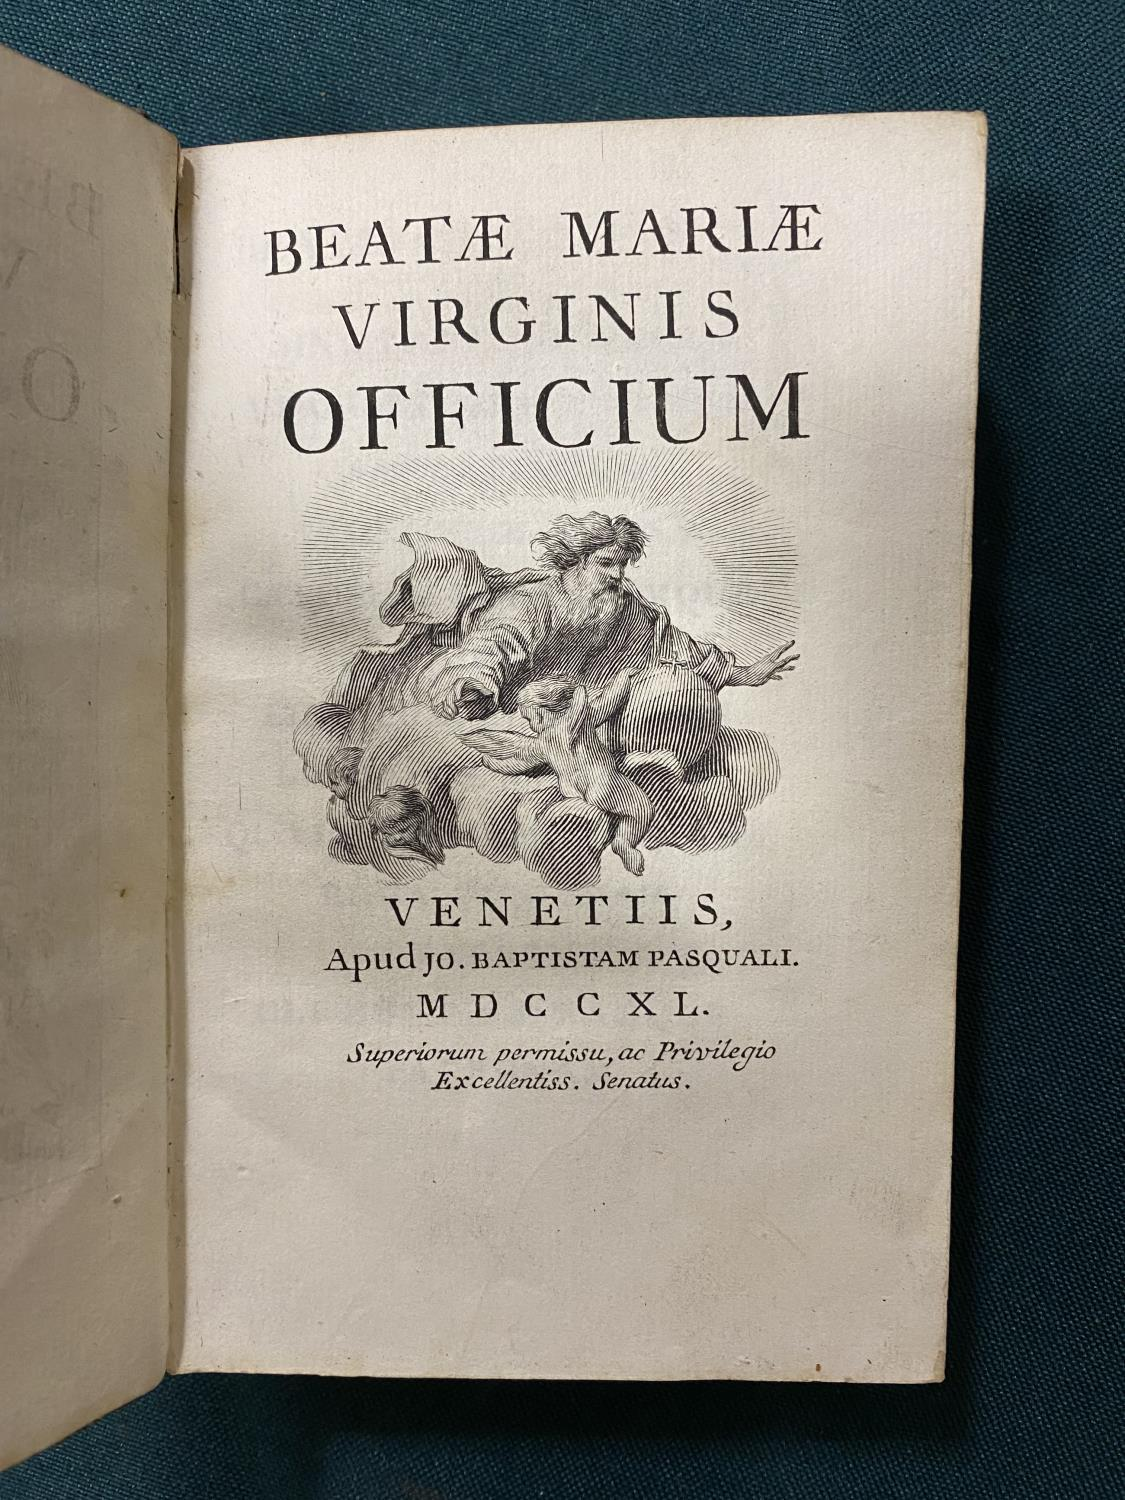 [Anon] Beatae Mariae Virginis Officium, engraved throughout, frontispiece, vignette on title and - Image 2 of 4